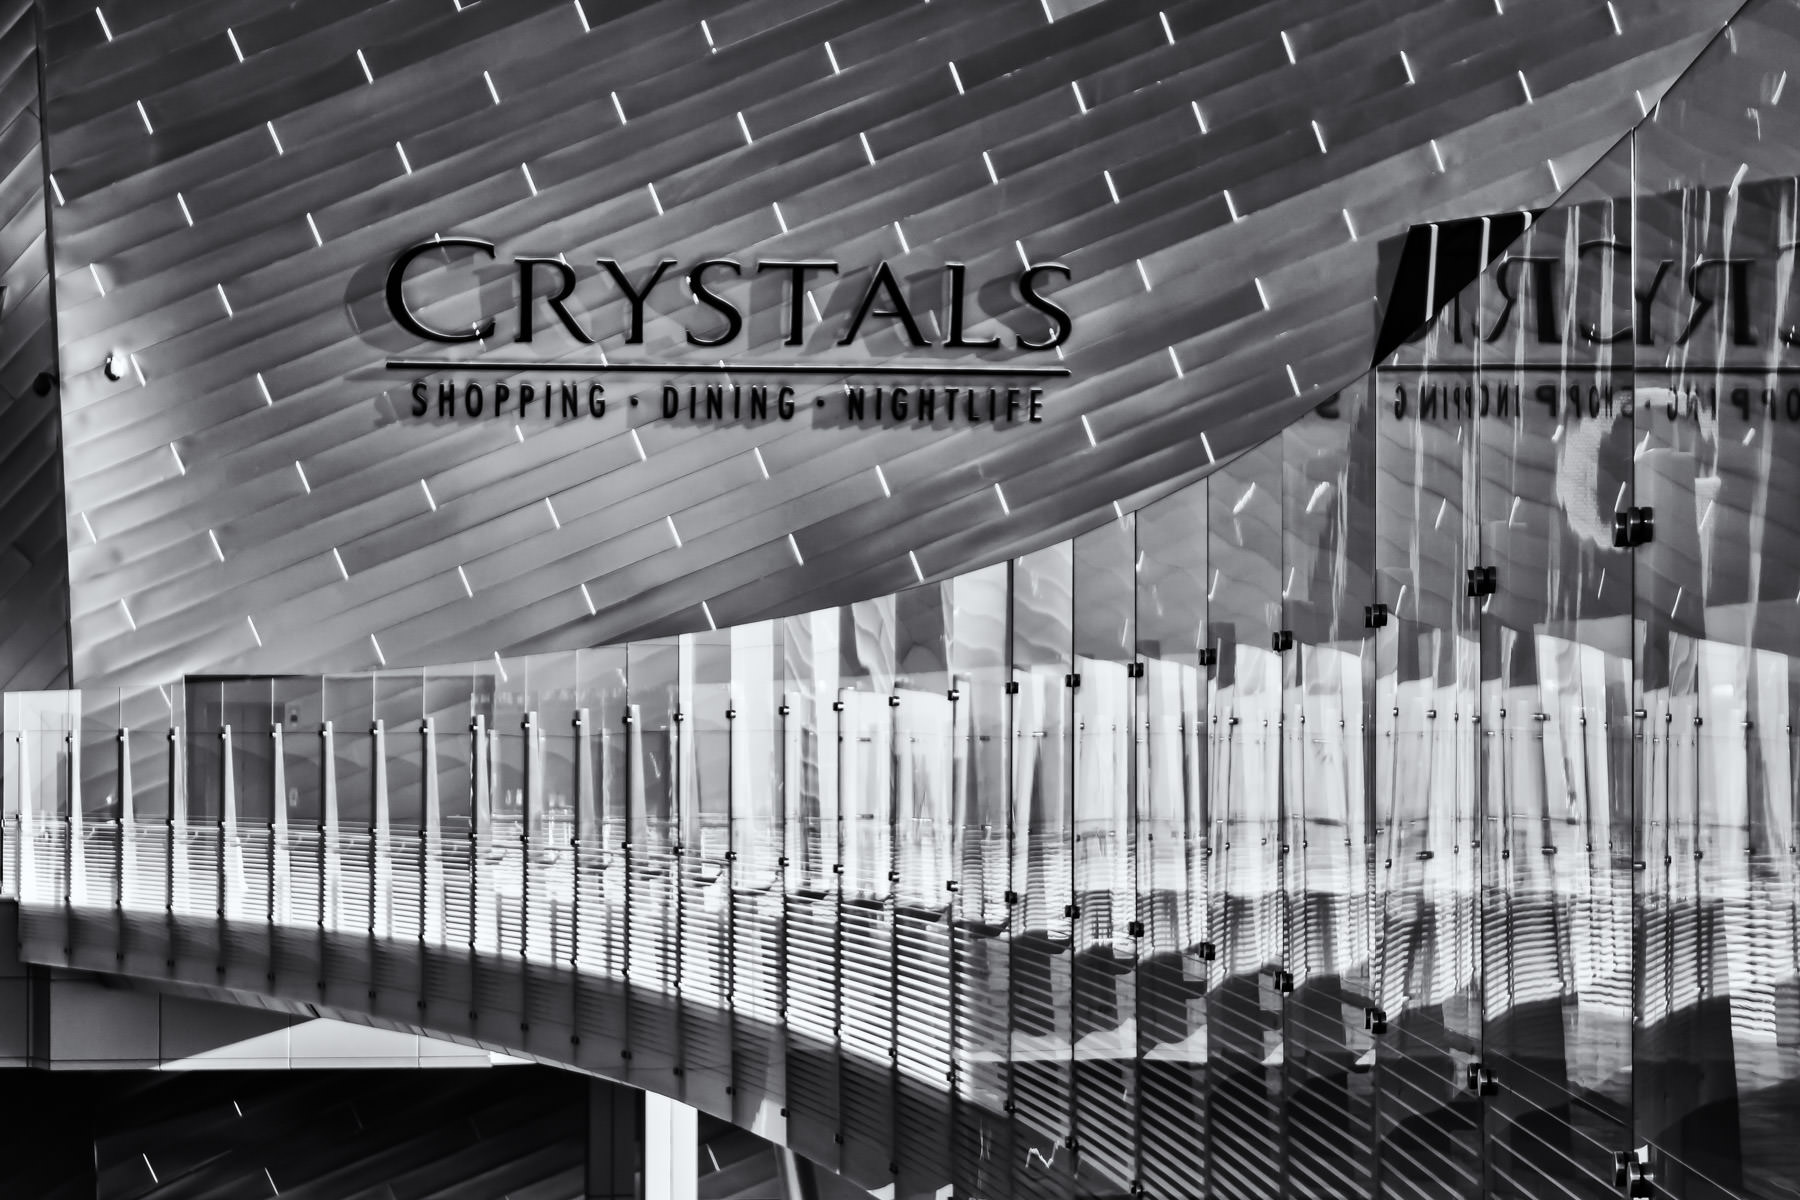 A glass bridge leads to The Crystals at CityCenter, Las Vegas.